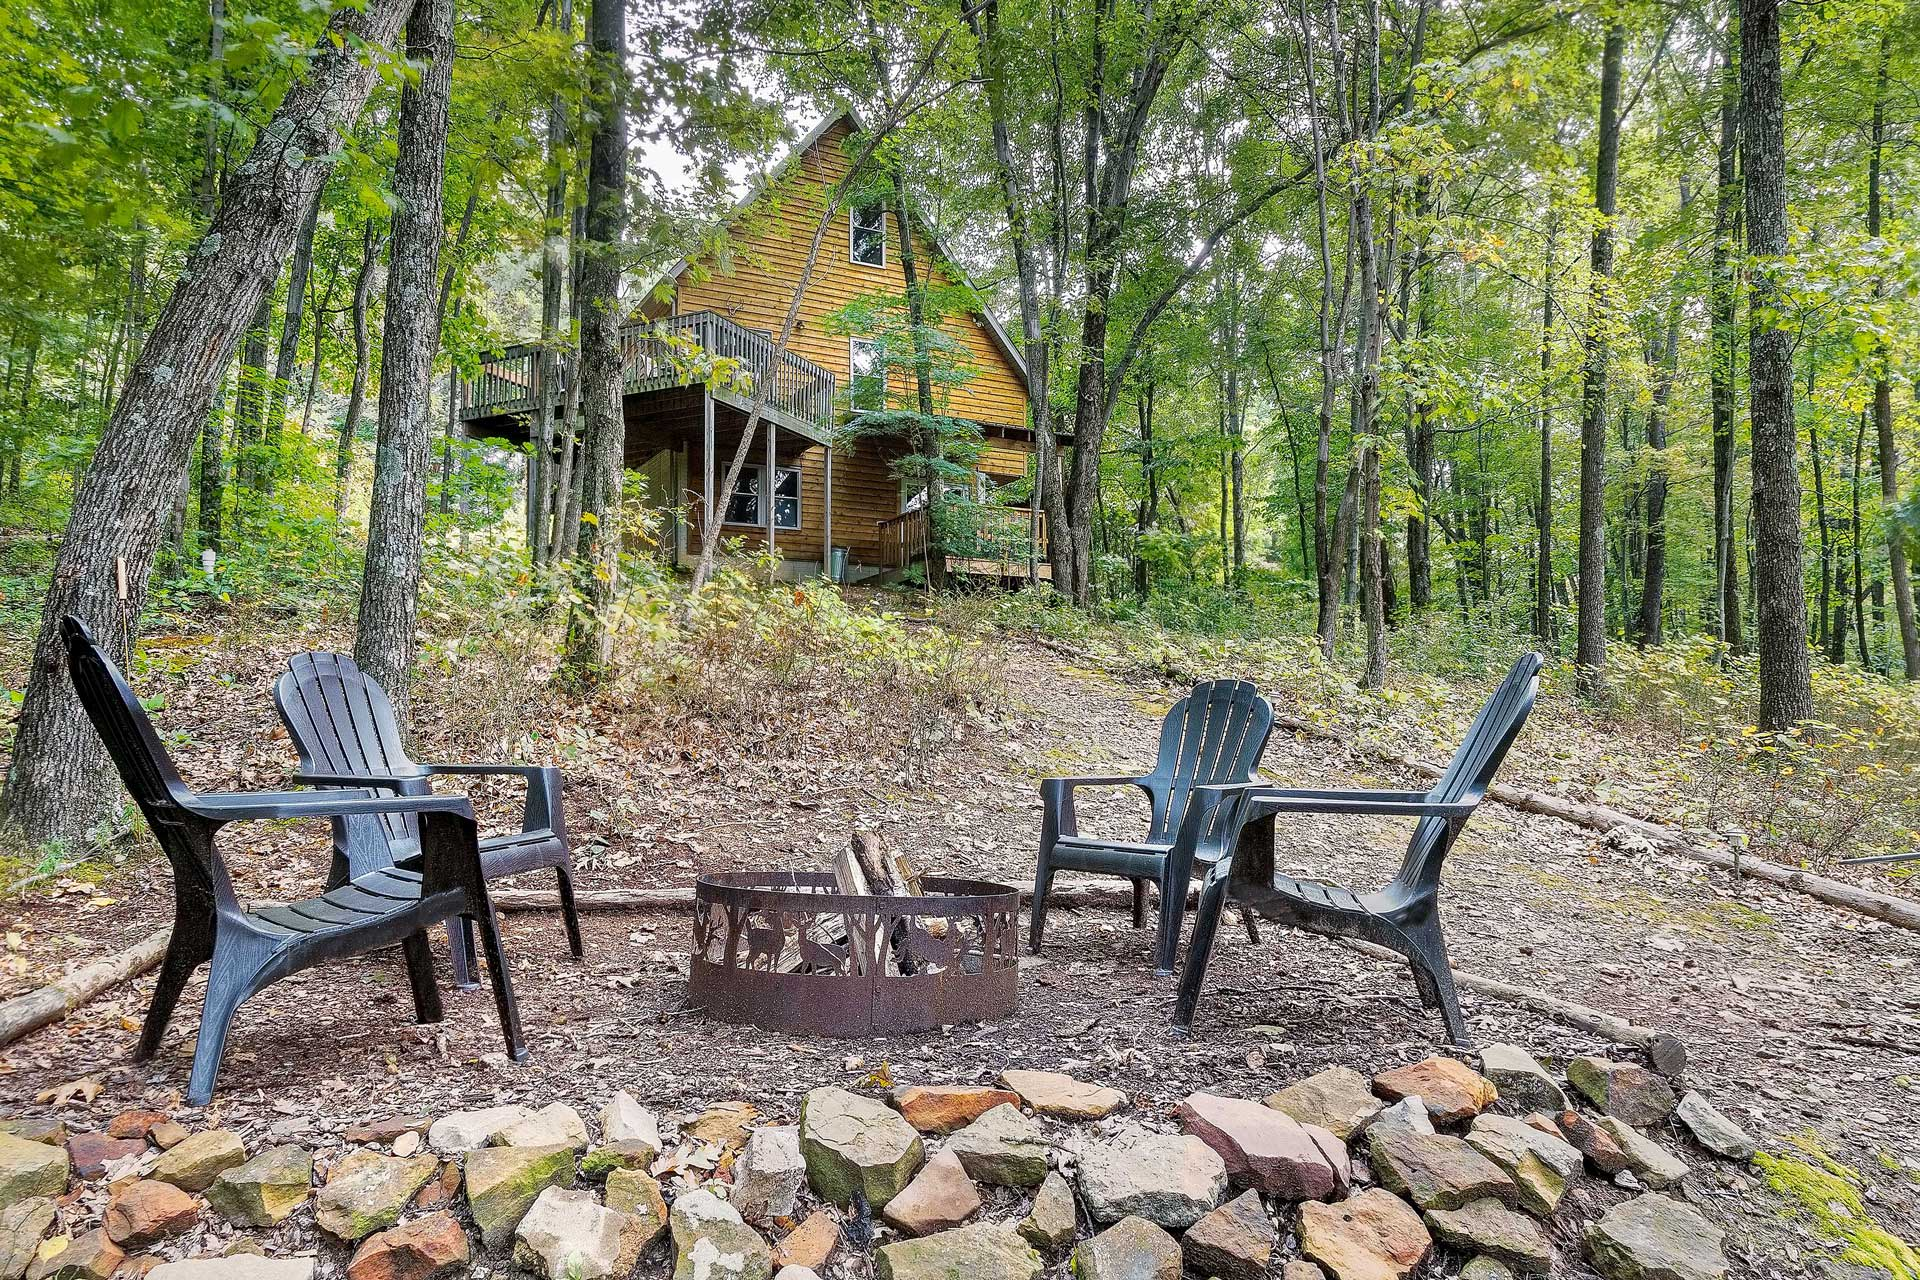 Secluded in the woods and surrounded by natural beauty, this home has it all.